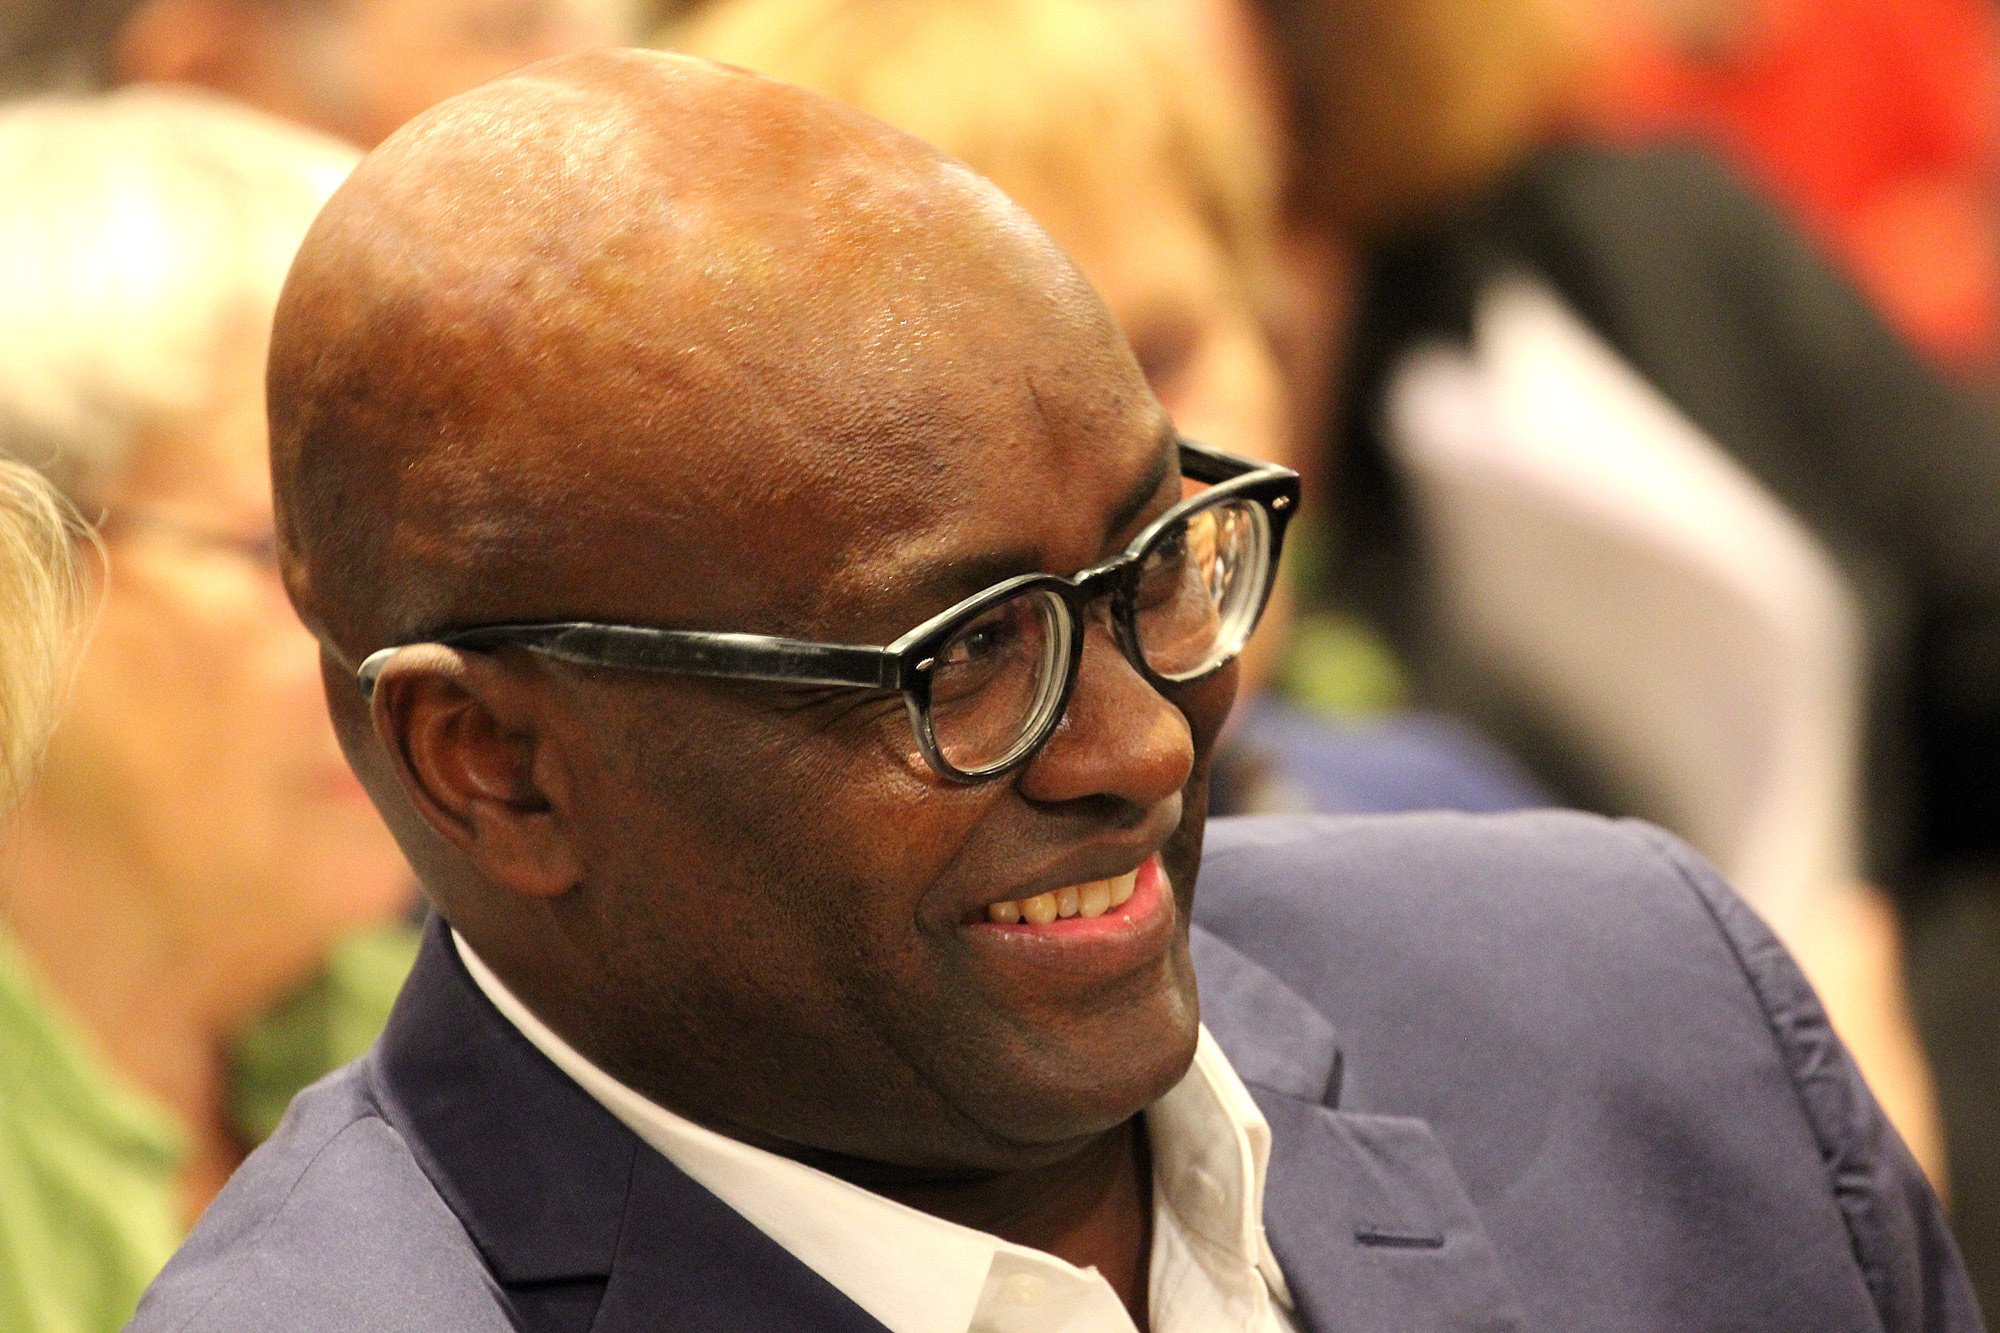 30 November 2015: Achille Mbembe's new book considers ways to confront humanity's greatest contemporary issues. (Photograph by Heike Huslage-Koch/ Wikicommons)